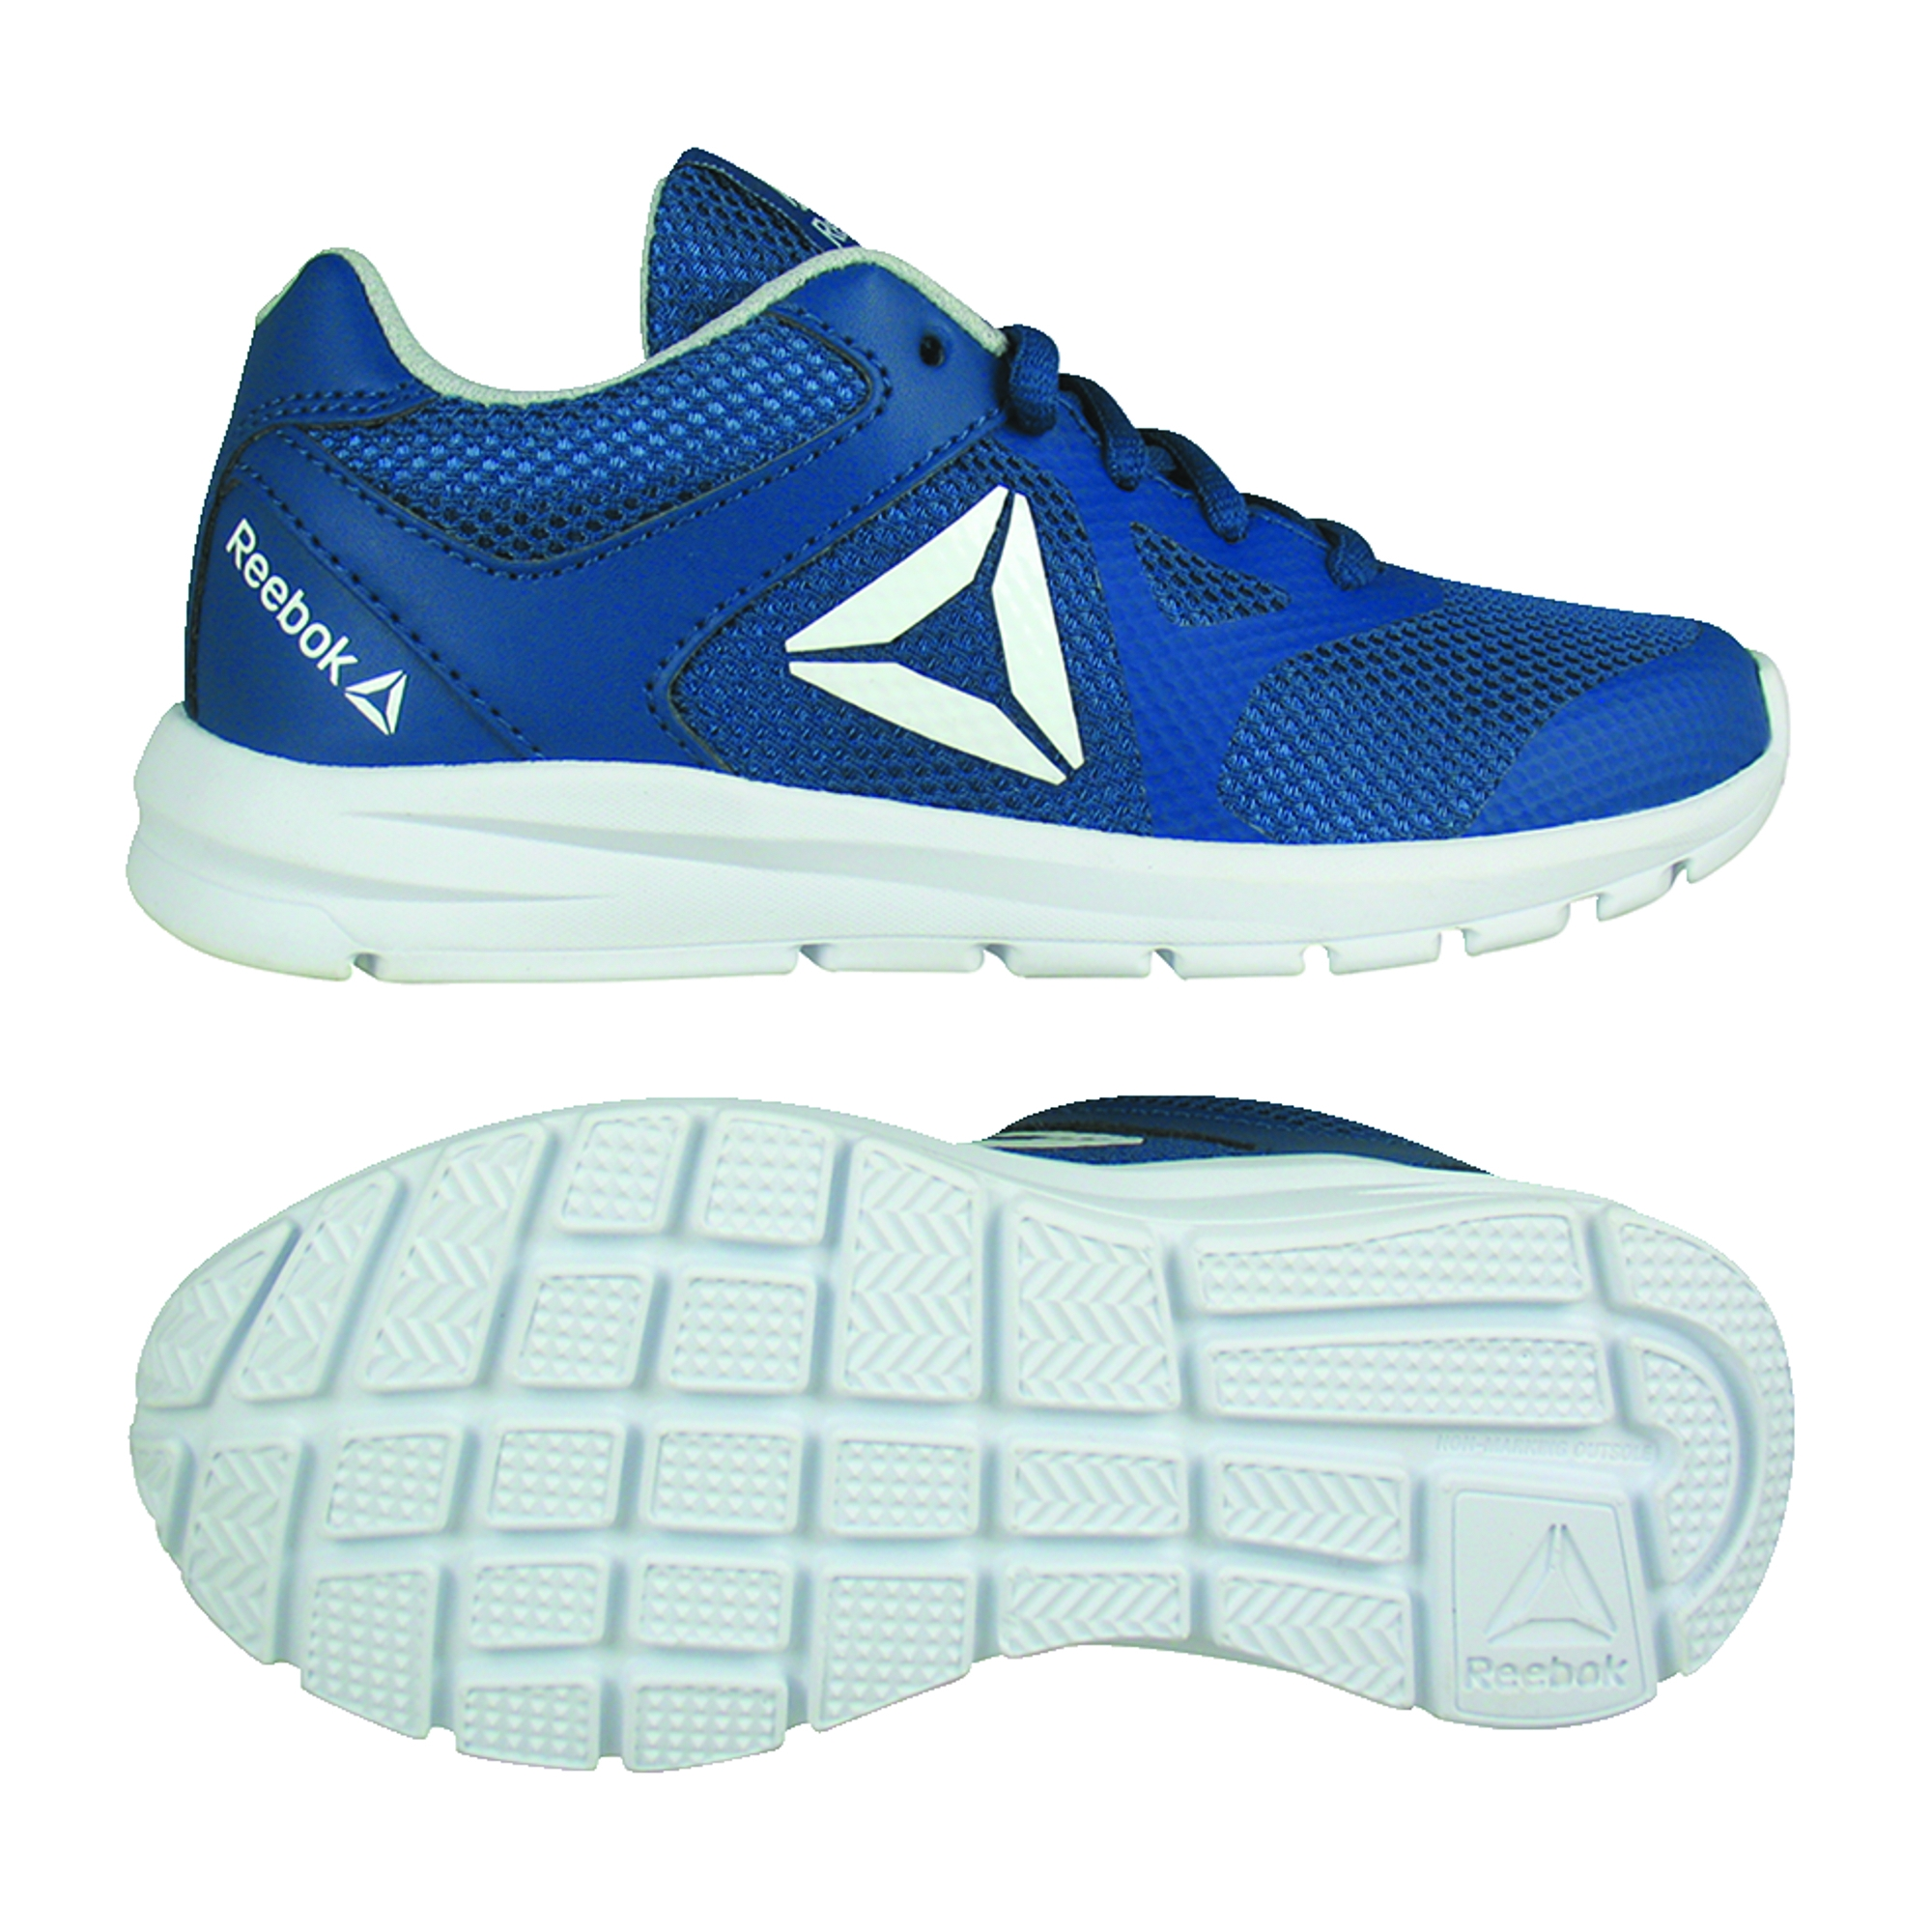 Reebok Chaussures Junior Rush Runner Y7gbfy6